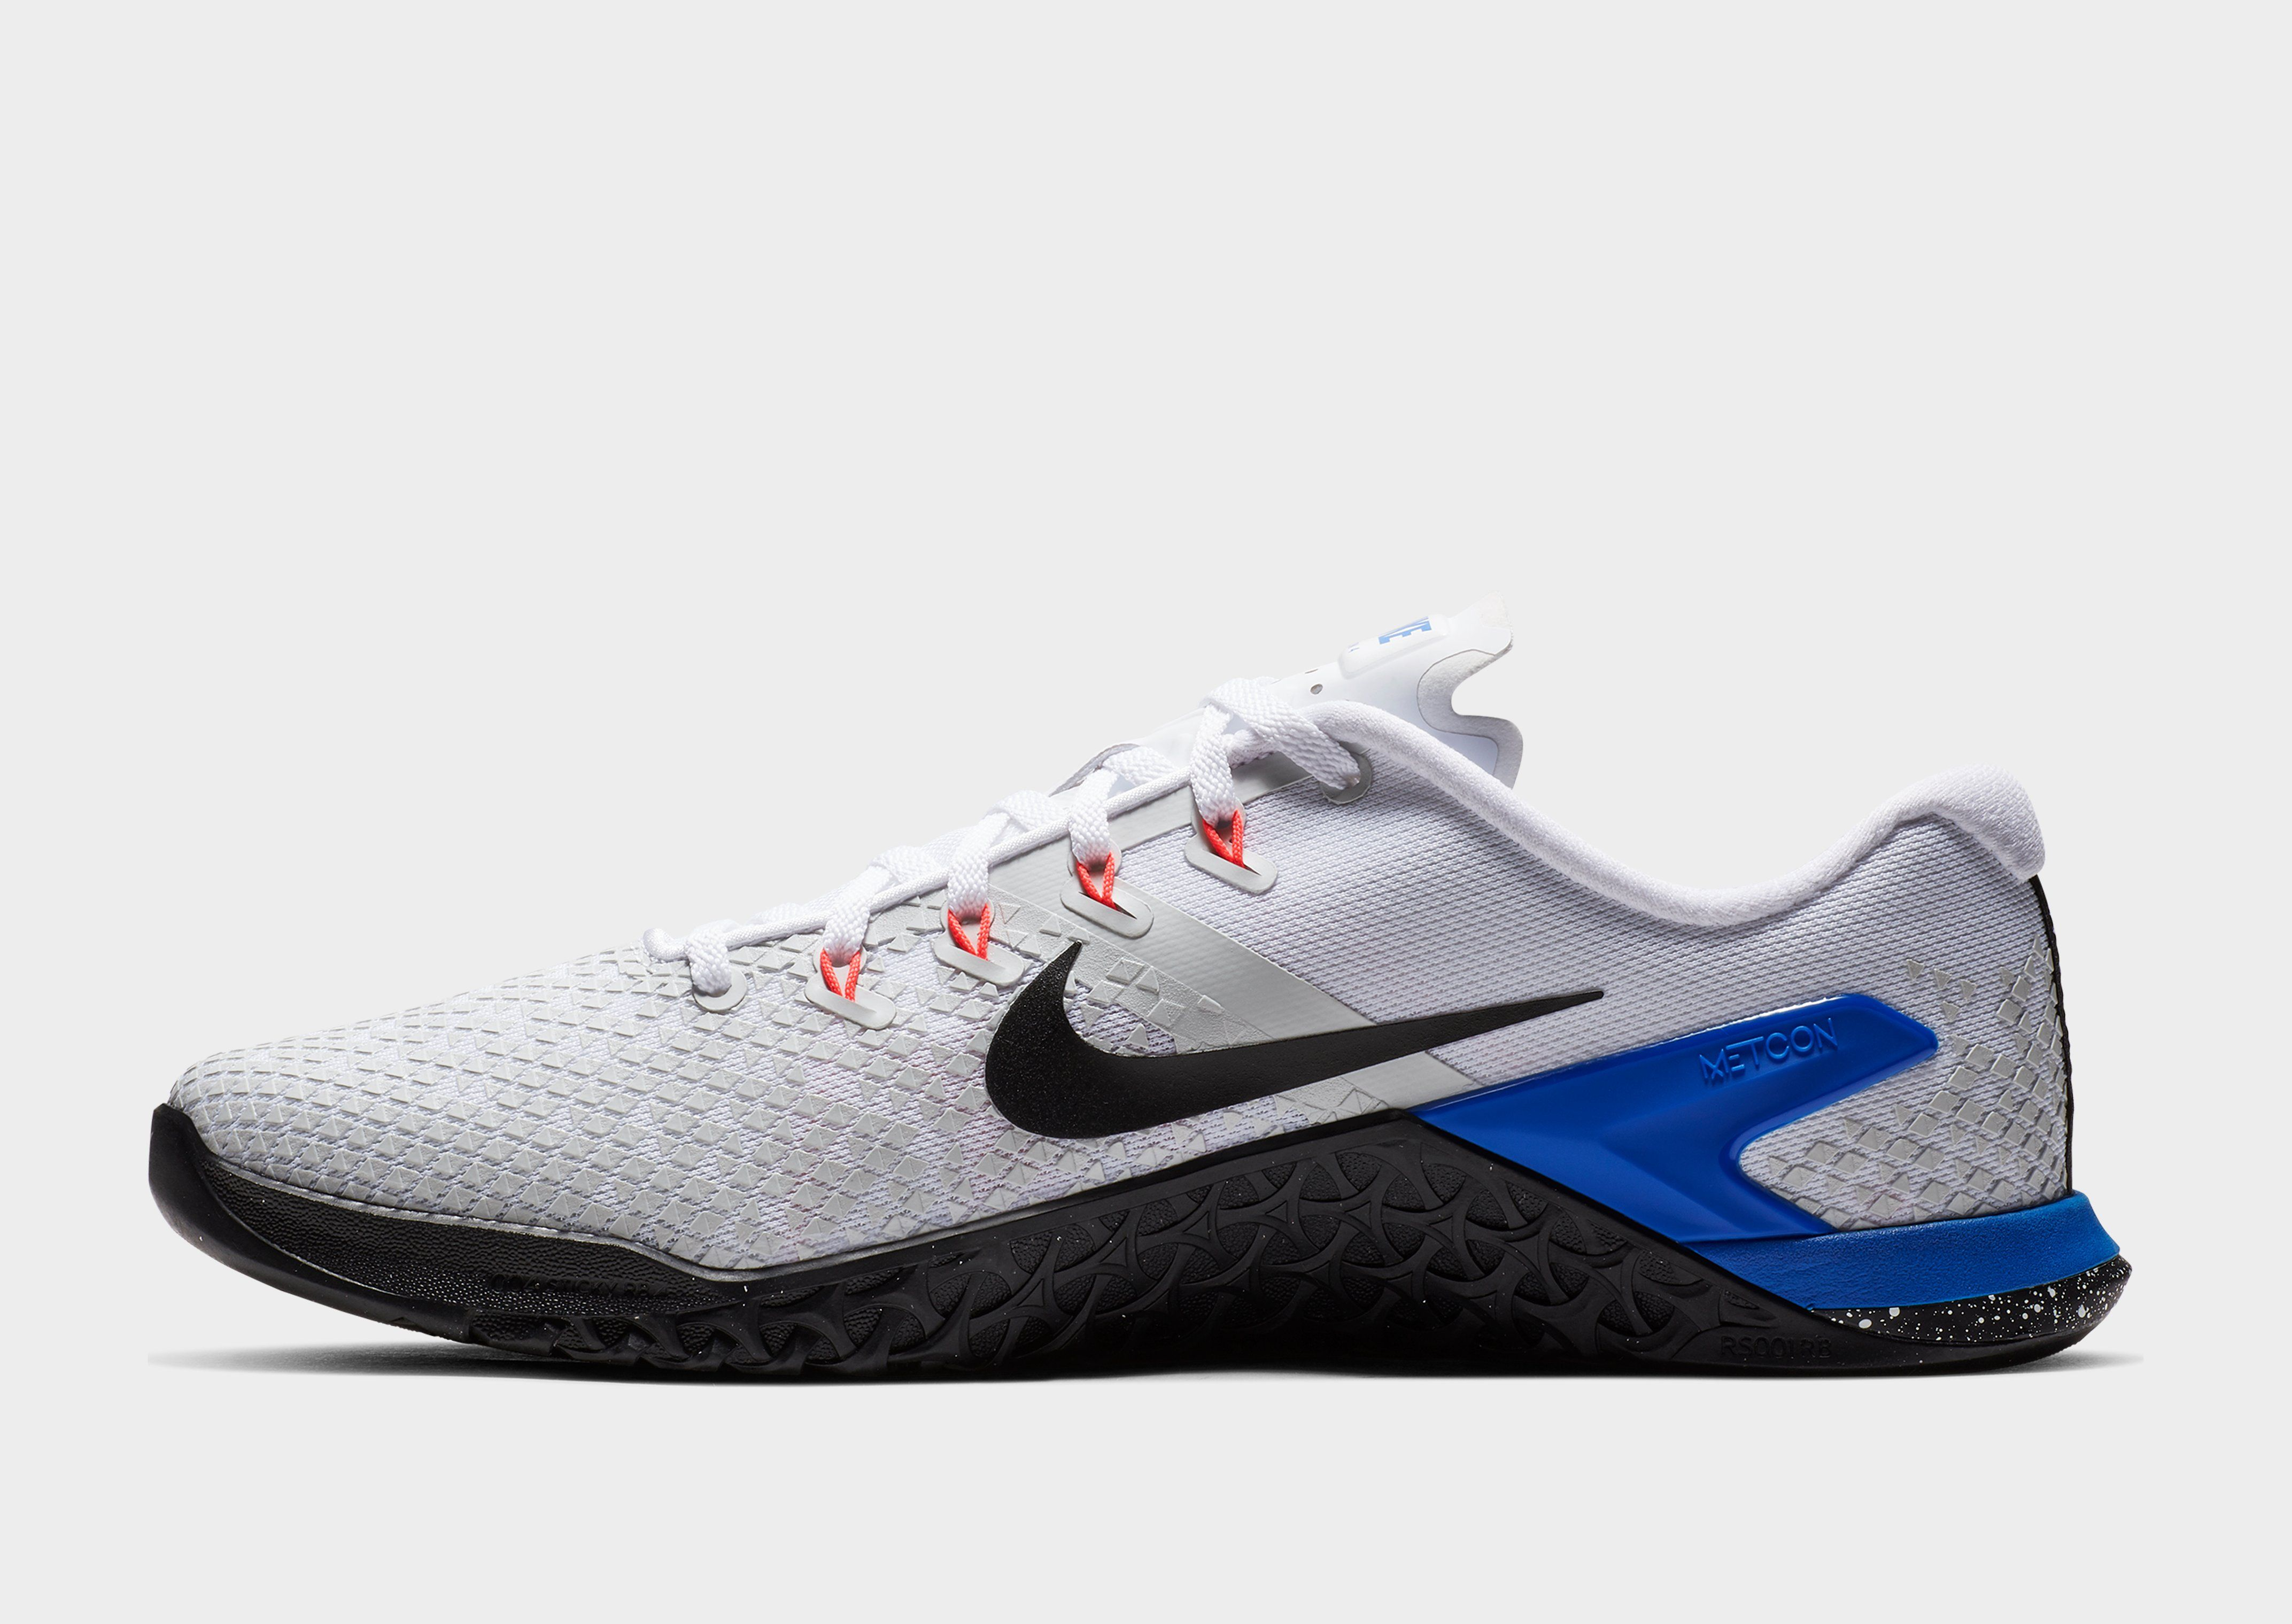 bed9dd37e771 NIKE Nike Metcon 4 XD Men s Training Shoe